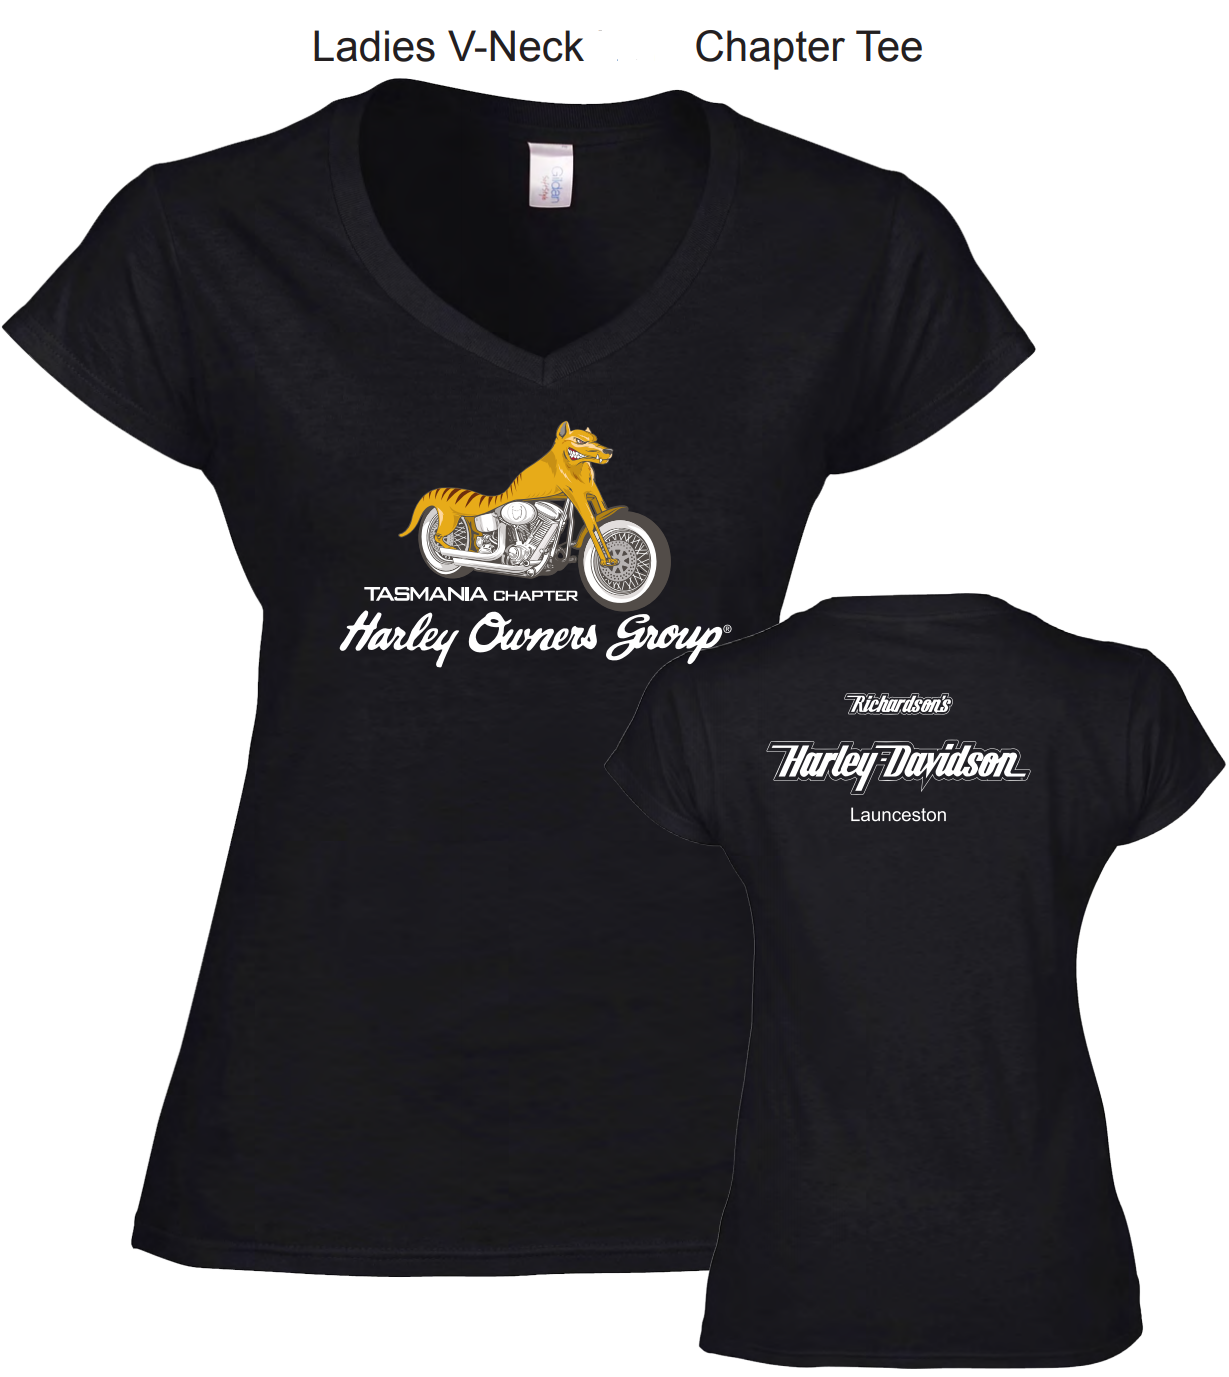 Ladies Tee Shirt Image